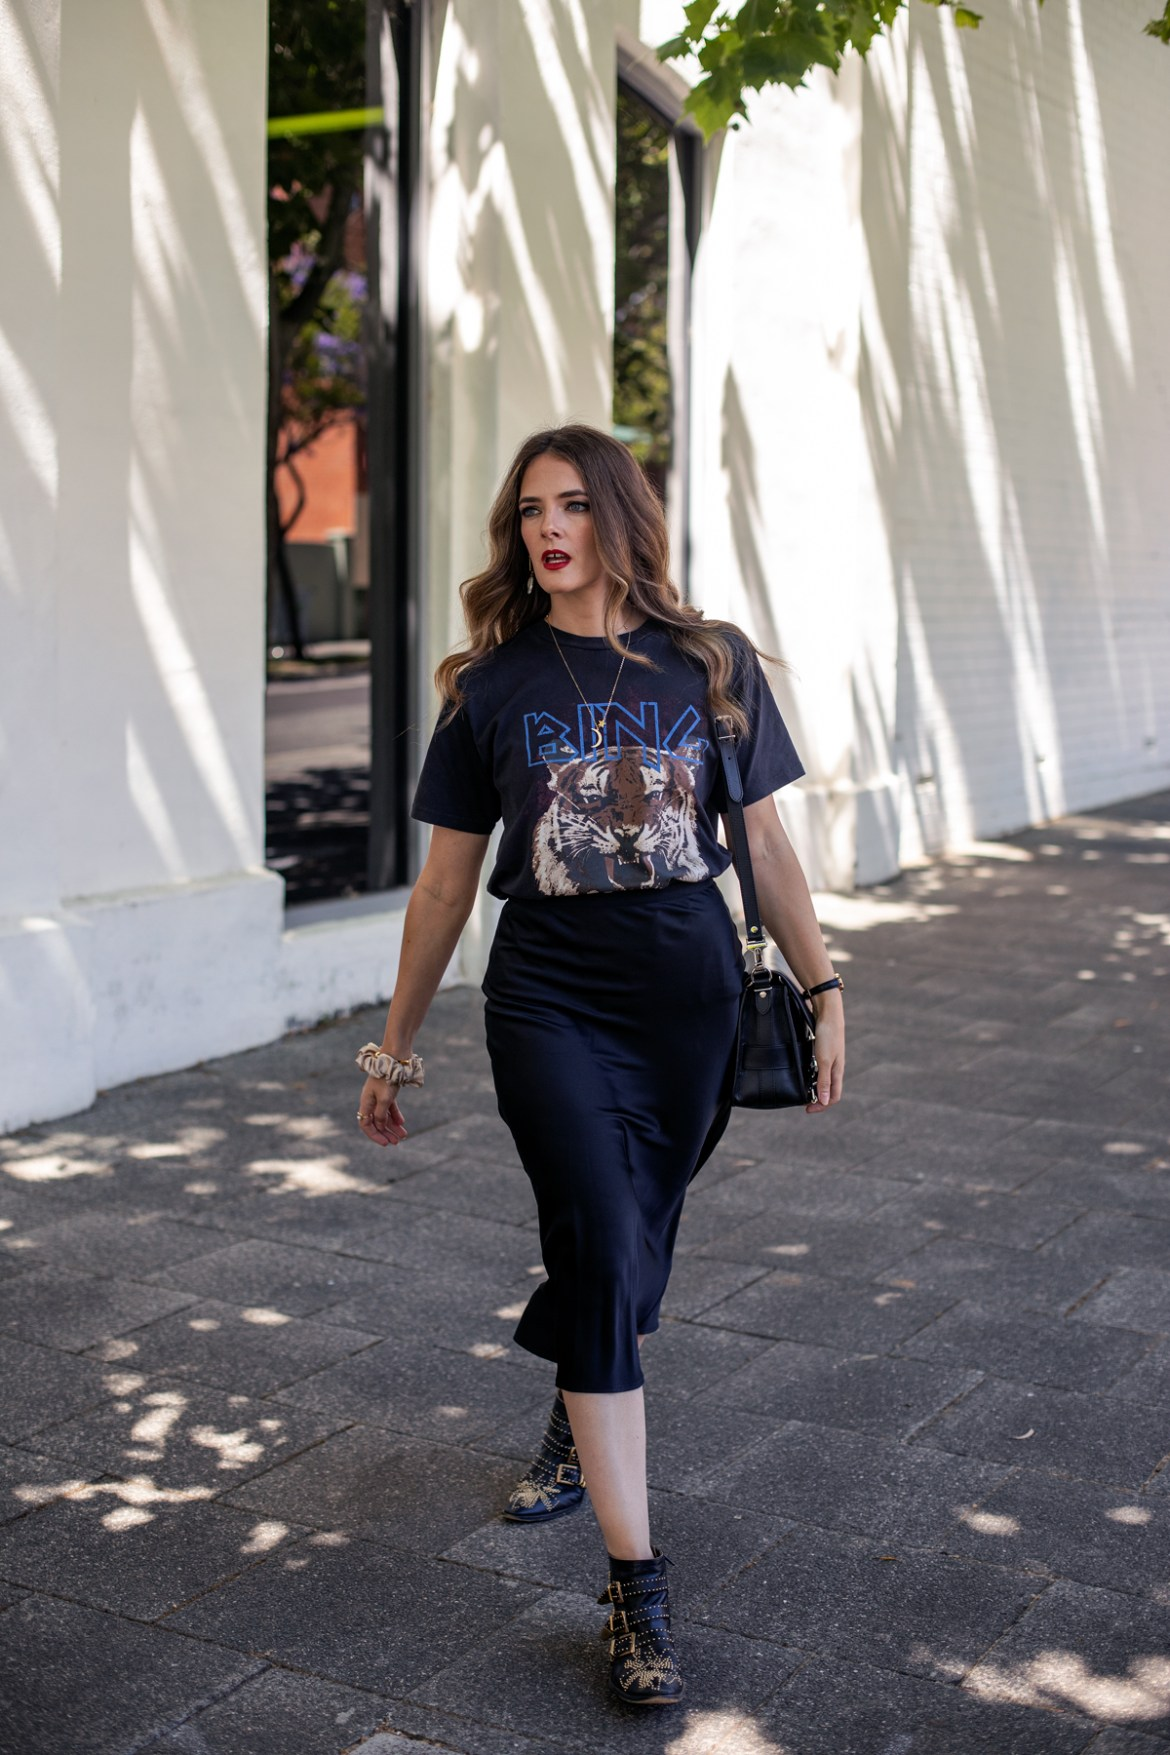 Anine Bing vintage tee with lion print and silk slip skirt worn with Chloe studded boots and Proenza Schouler PS11 bag by fashion blogger Jenelle Witty from the blog Inspiring Wit